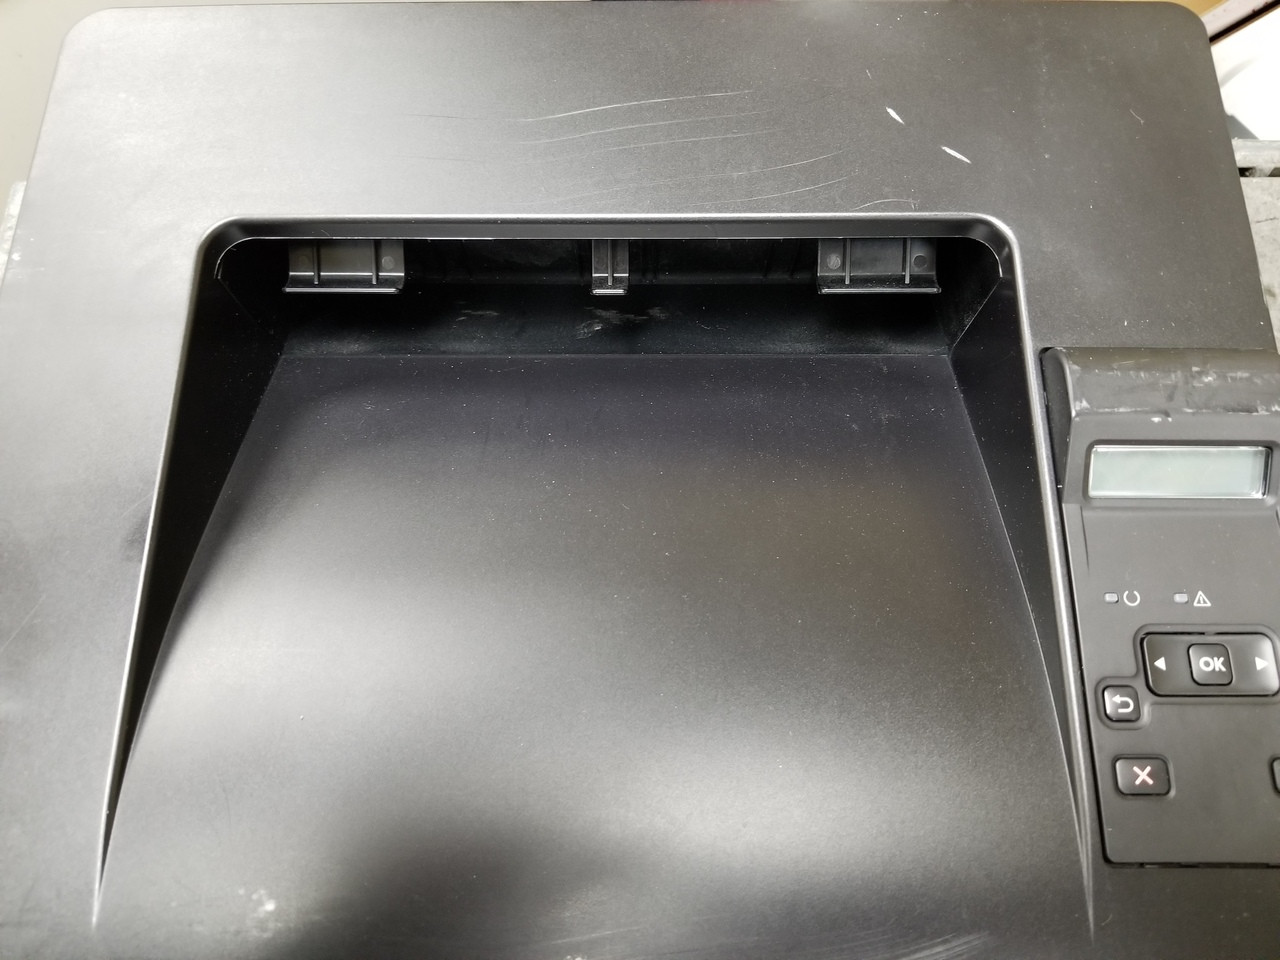 Printer may have cosmetic scratches or blemishes